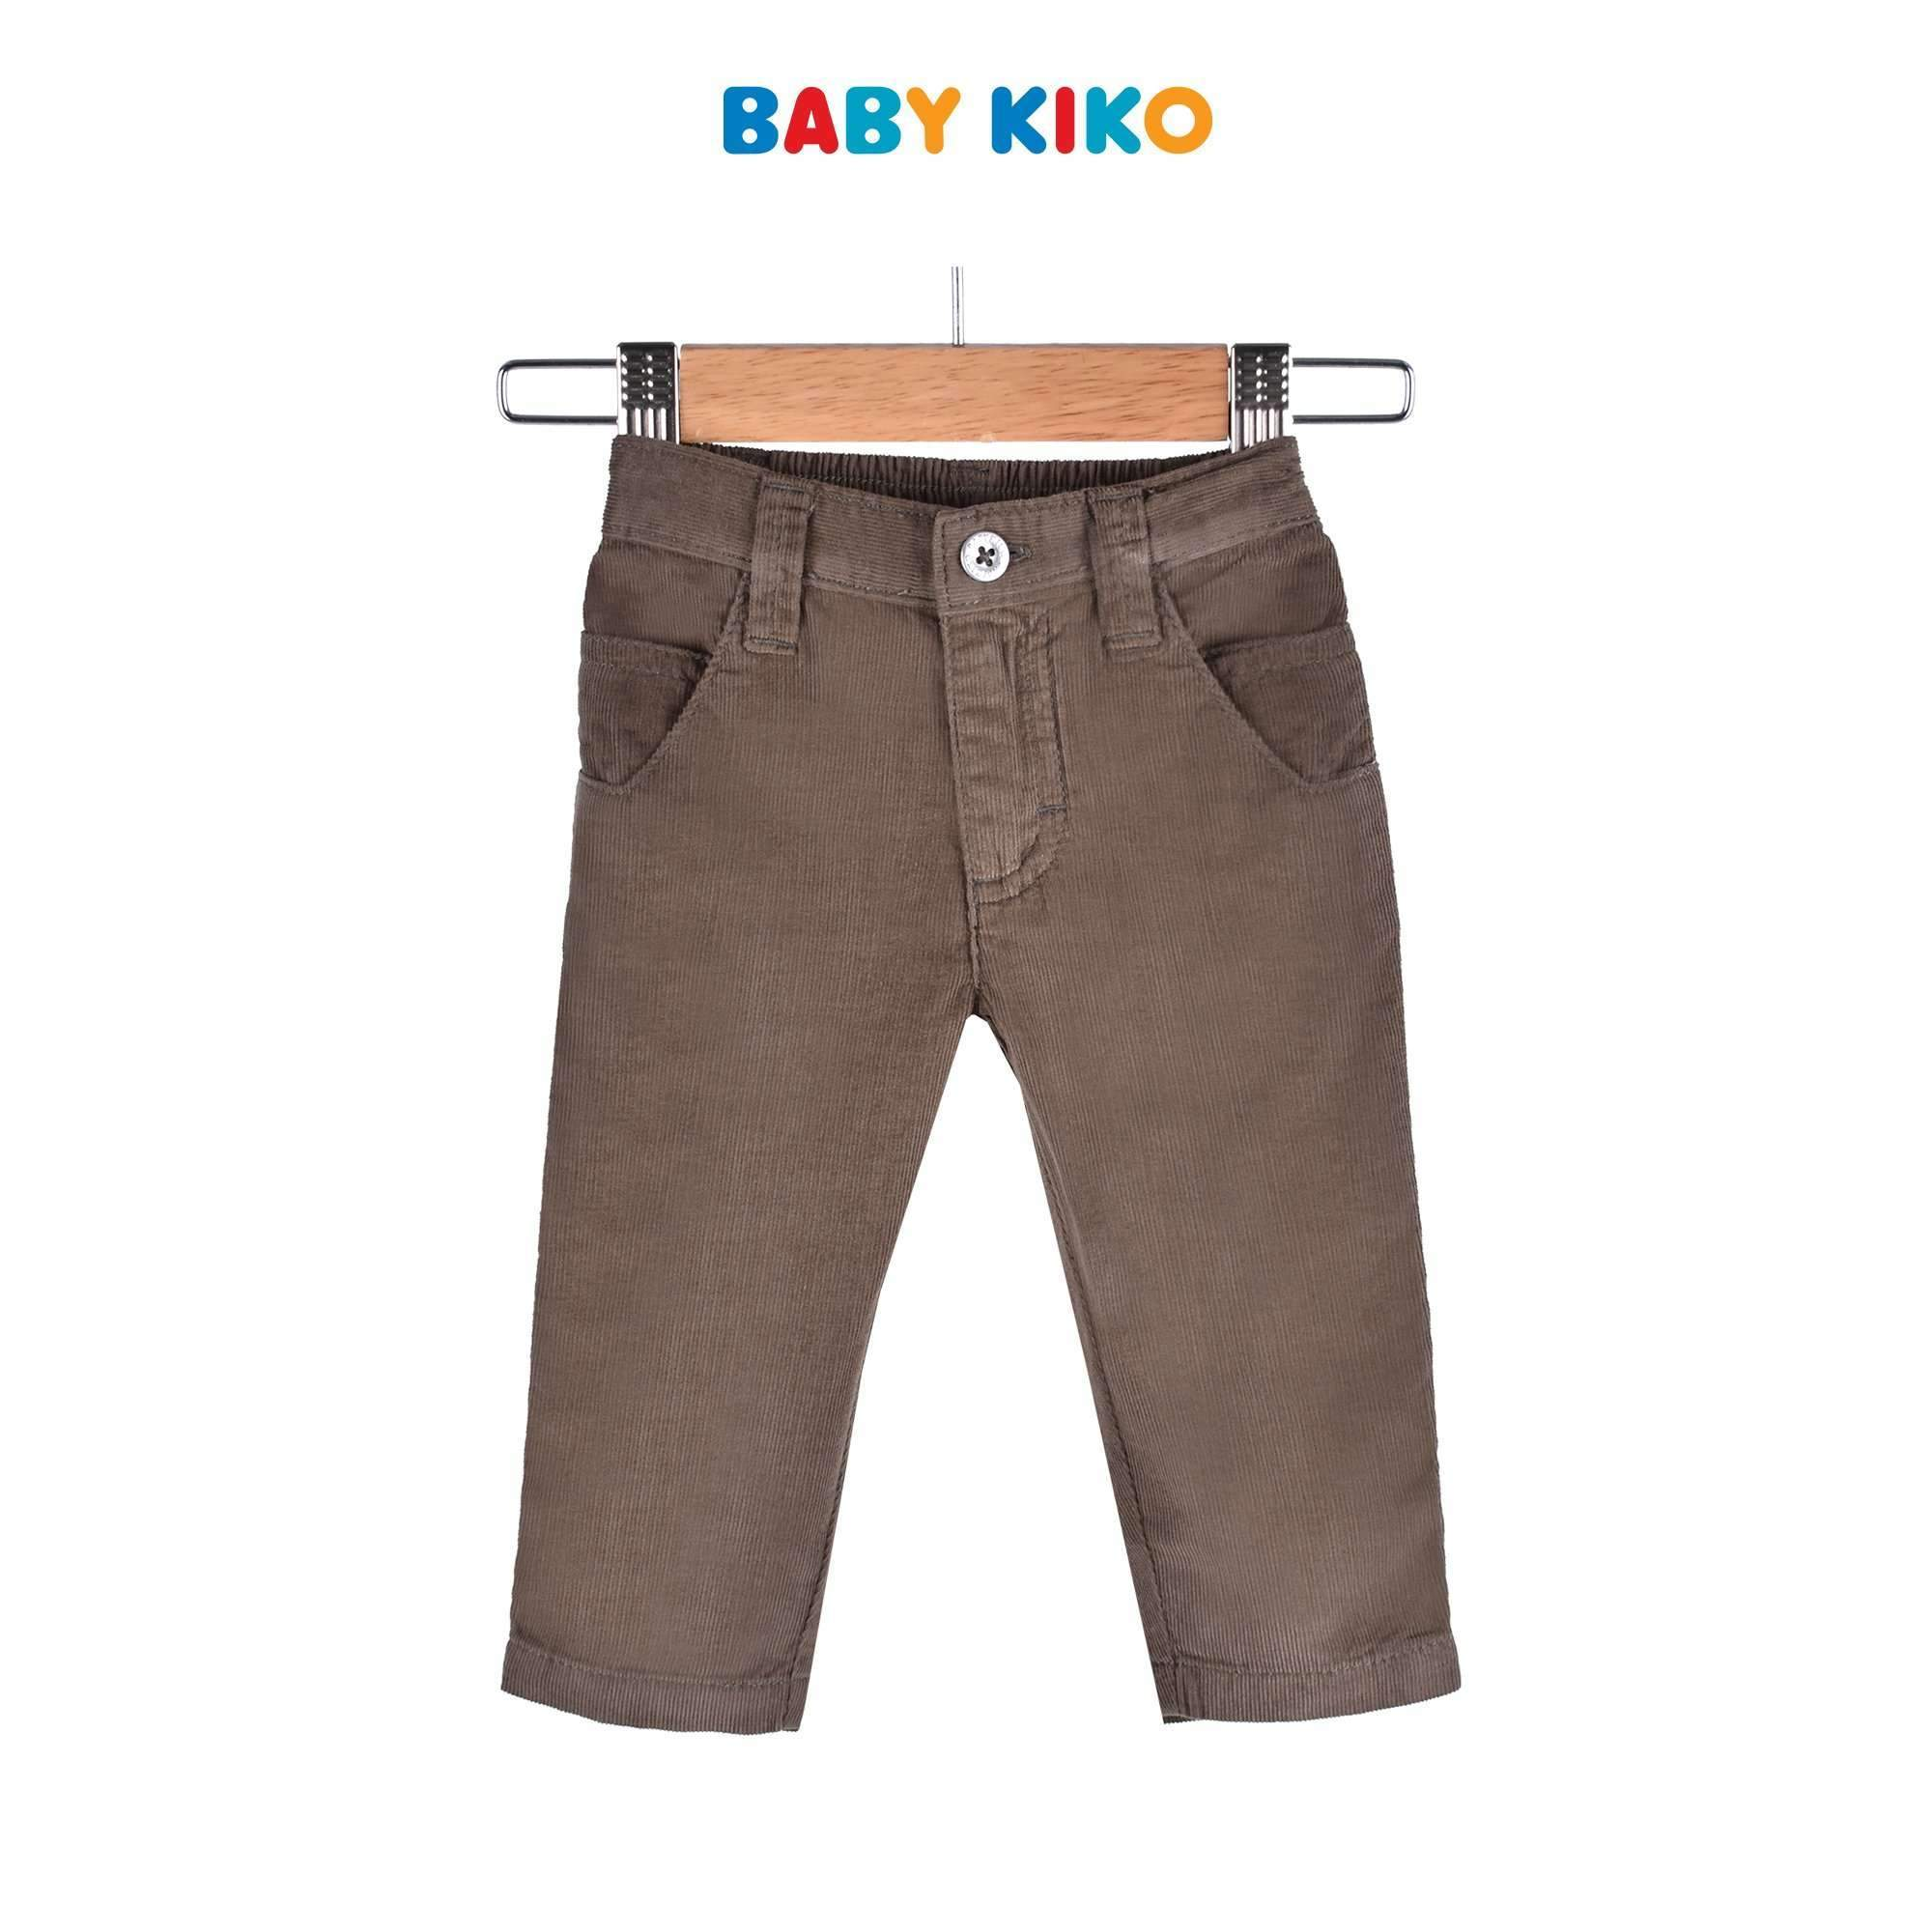 Baby KIKO Baby Boy Woven Long Pants - Brown 310116-252 : Buy Baby KIKO online at CMG.MY